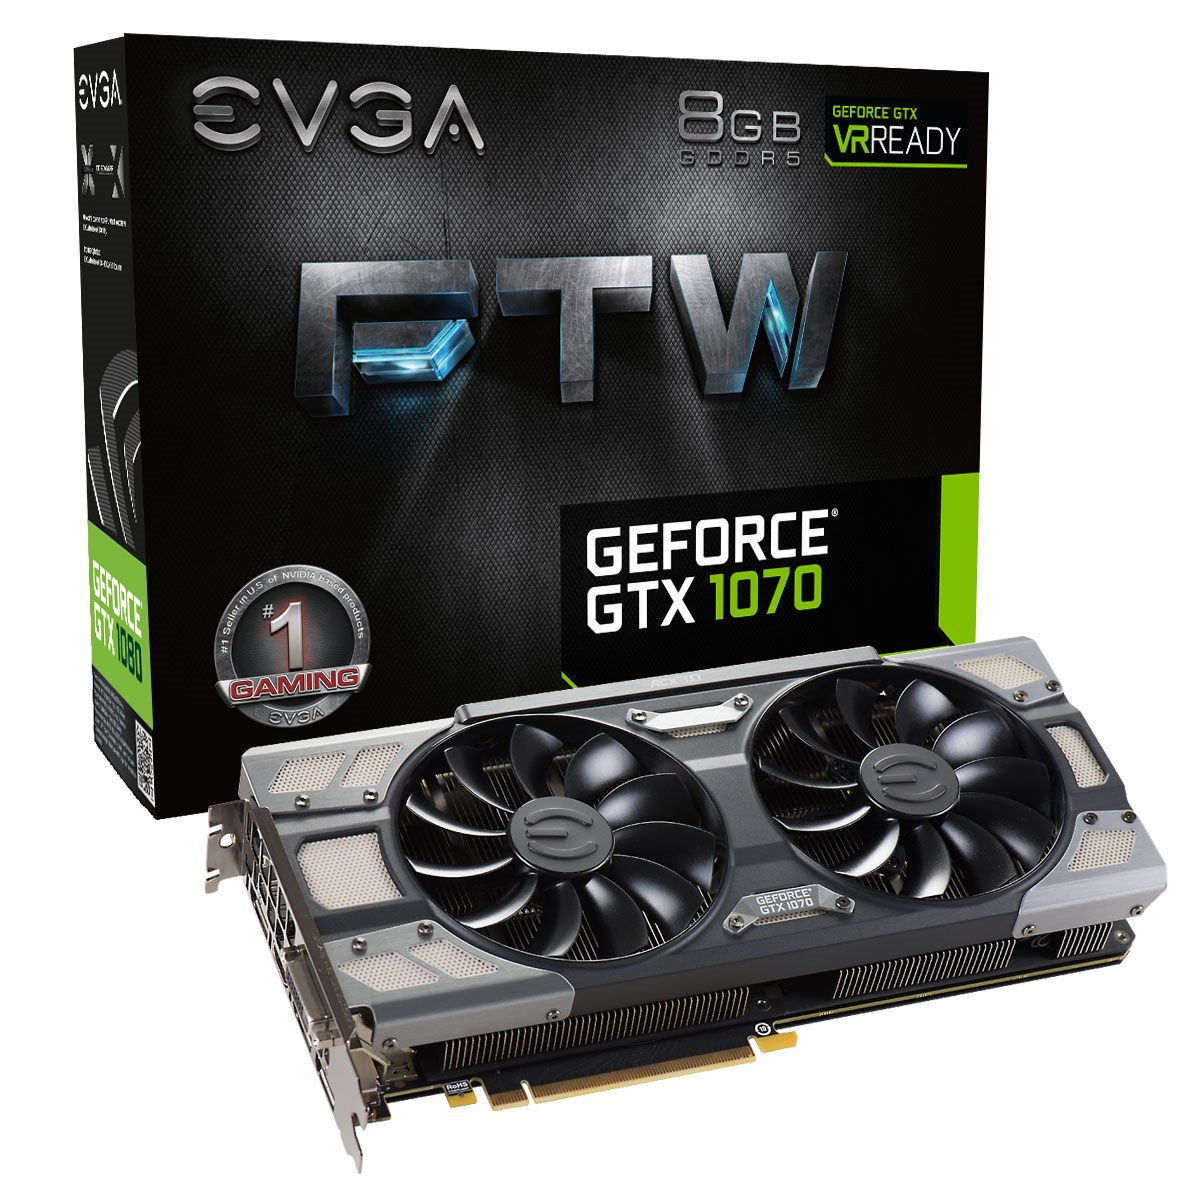 EVGA GeForce GTX 1070 8GB FTW GAMING ACX 3 0 Boost Graphics Card